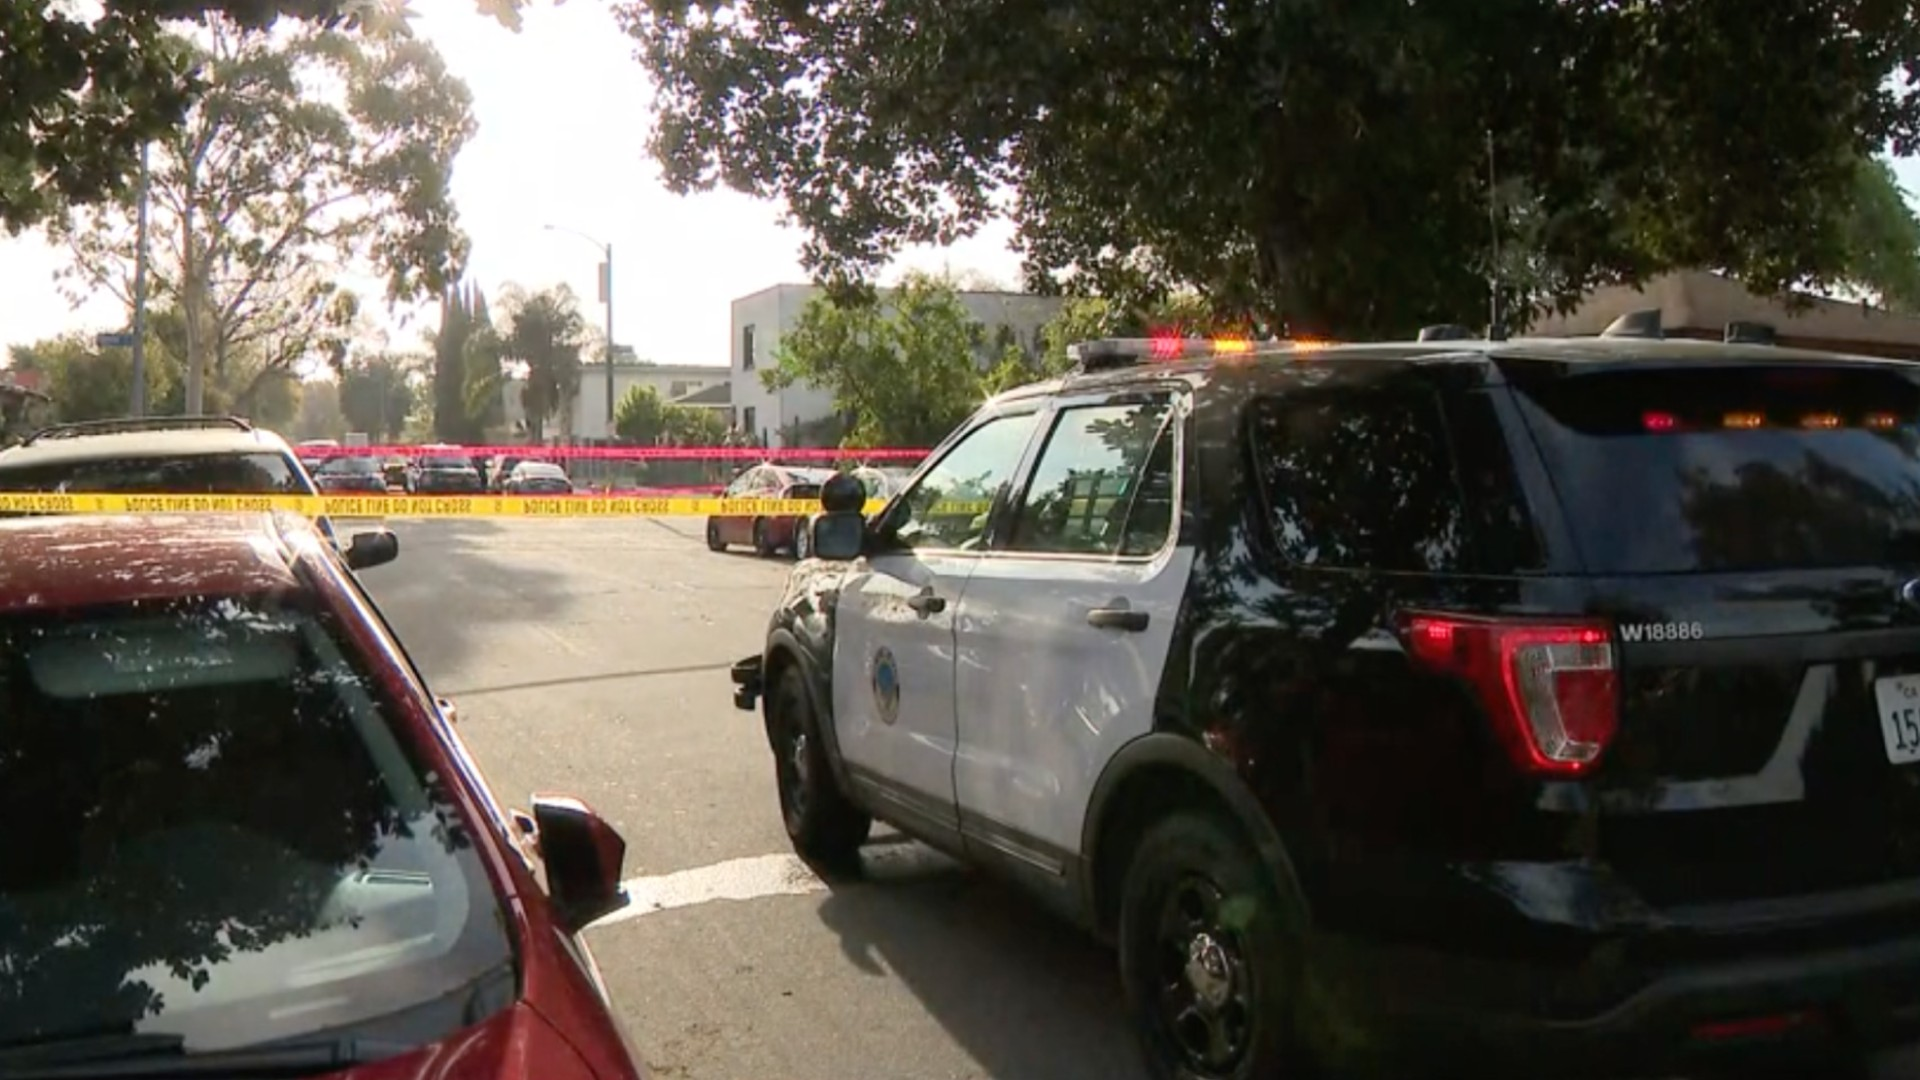 One man was killed and another was hospitalized after a possibly gang-related dispute resulted in a shooting in Long Beach on April 2, 2021. (KTLA)